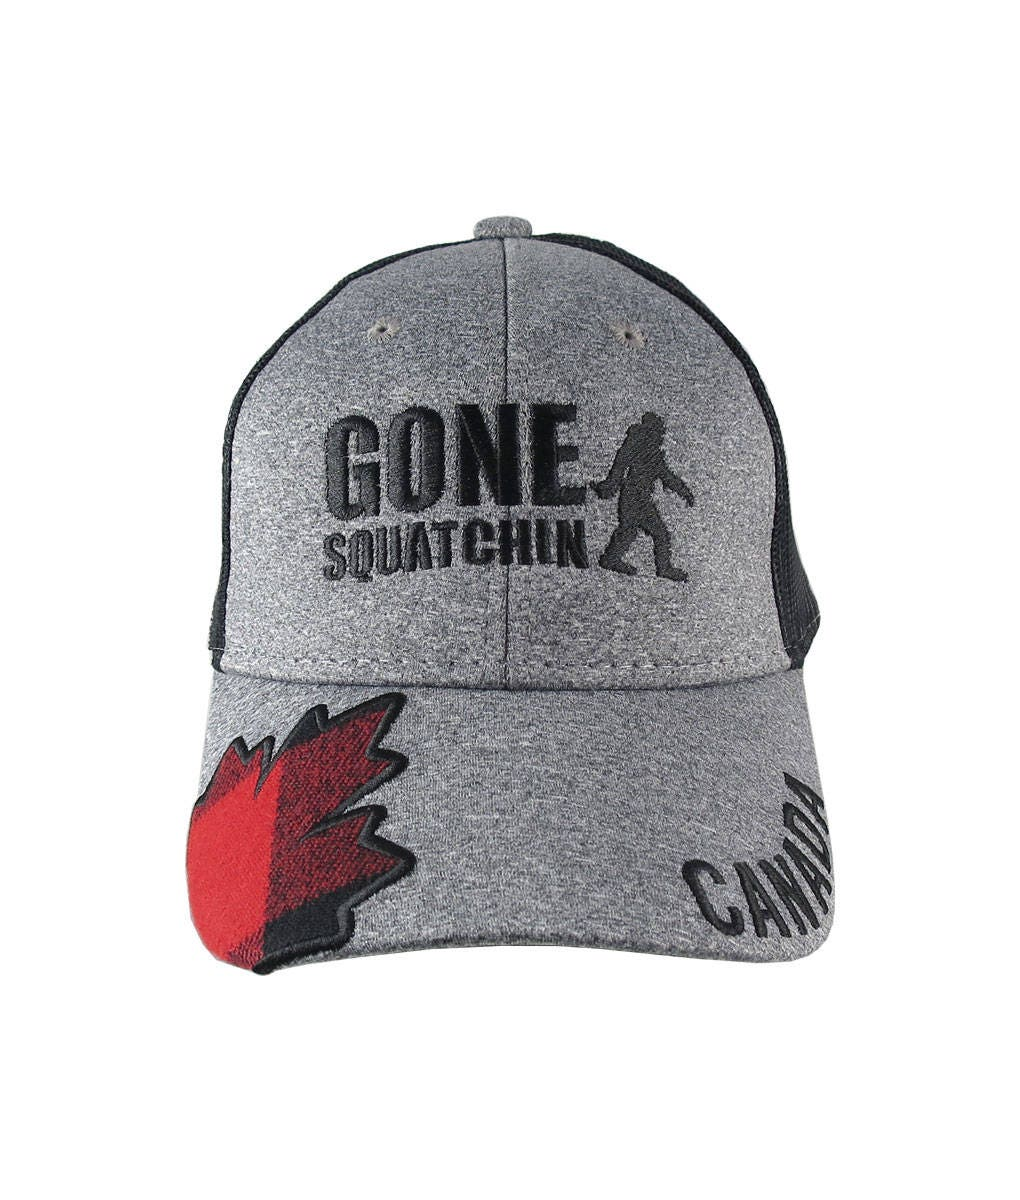 Gone Squatchin Sasquatch Bigfoot Canada Embroidery and Buffalo Check Plaid  on Adjustable Heather Grey and Black Trucker Style Baseball Cap 06929682d8b